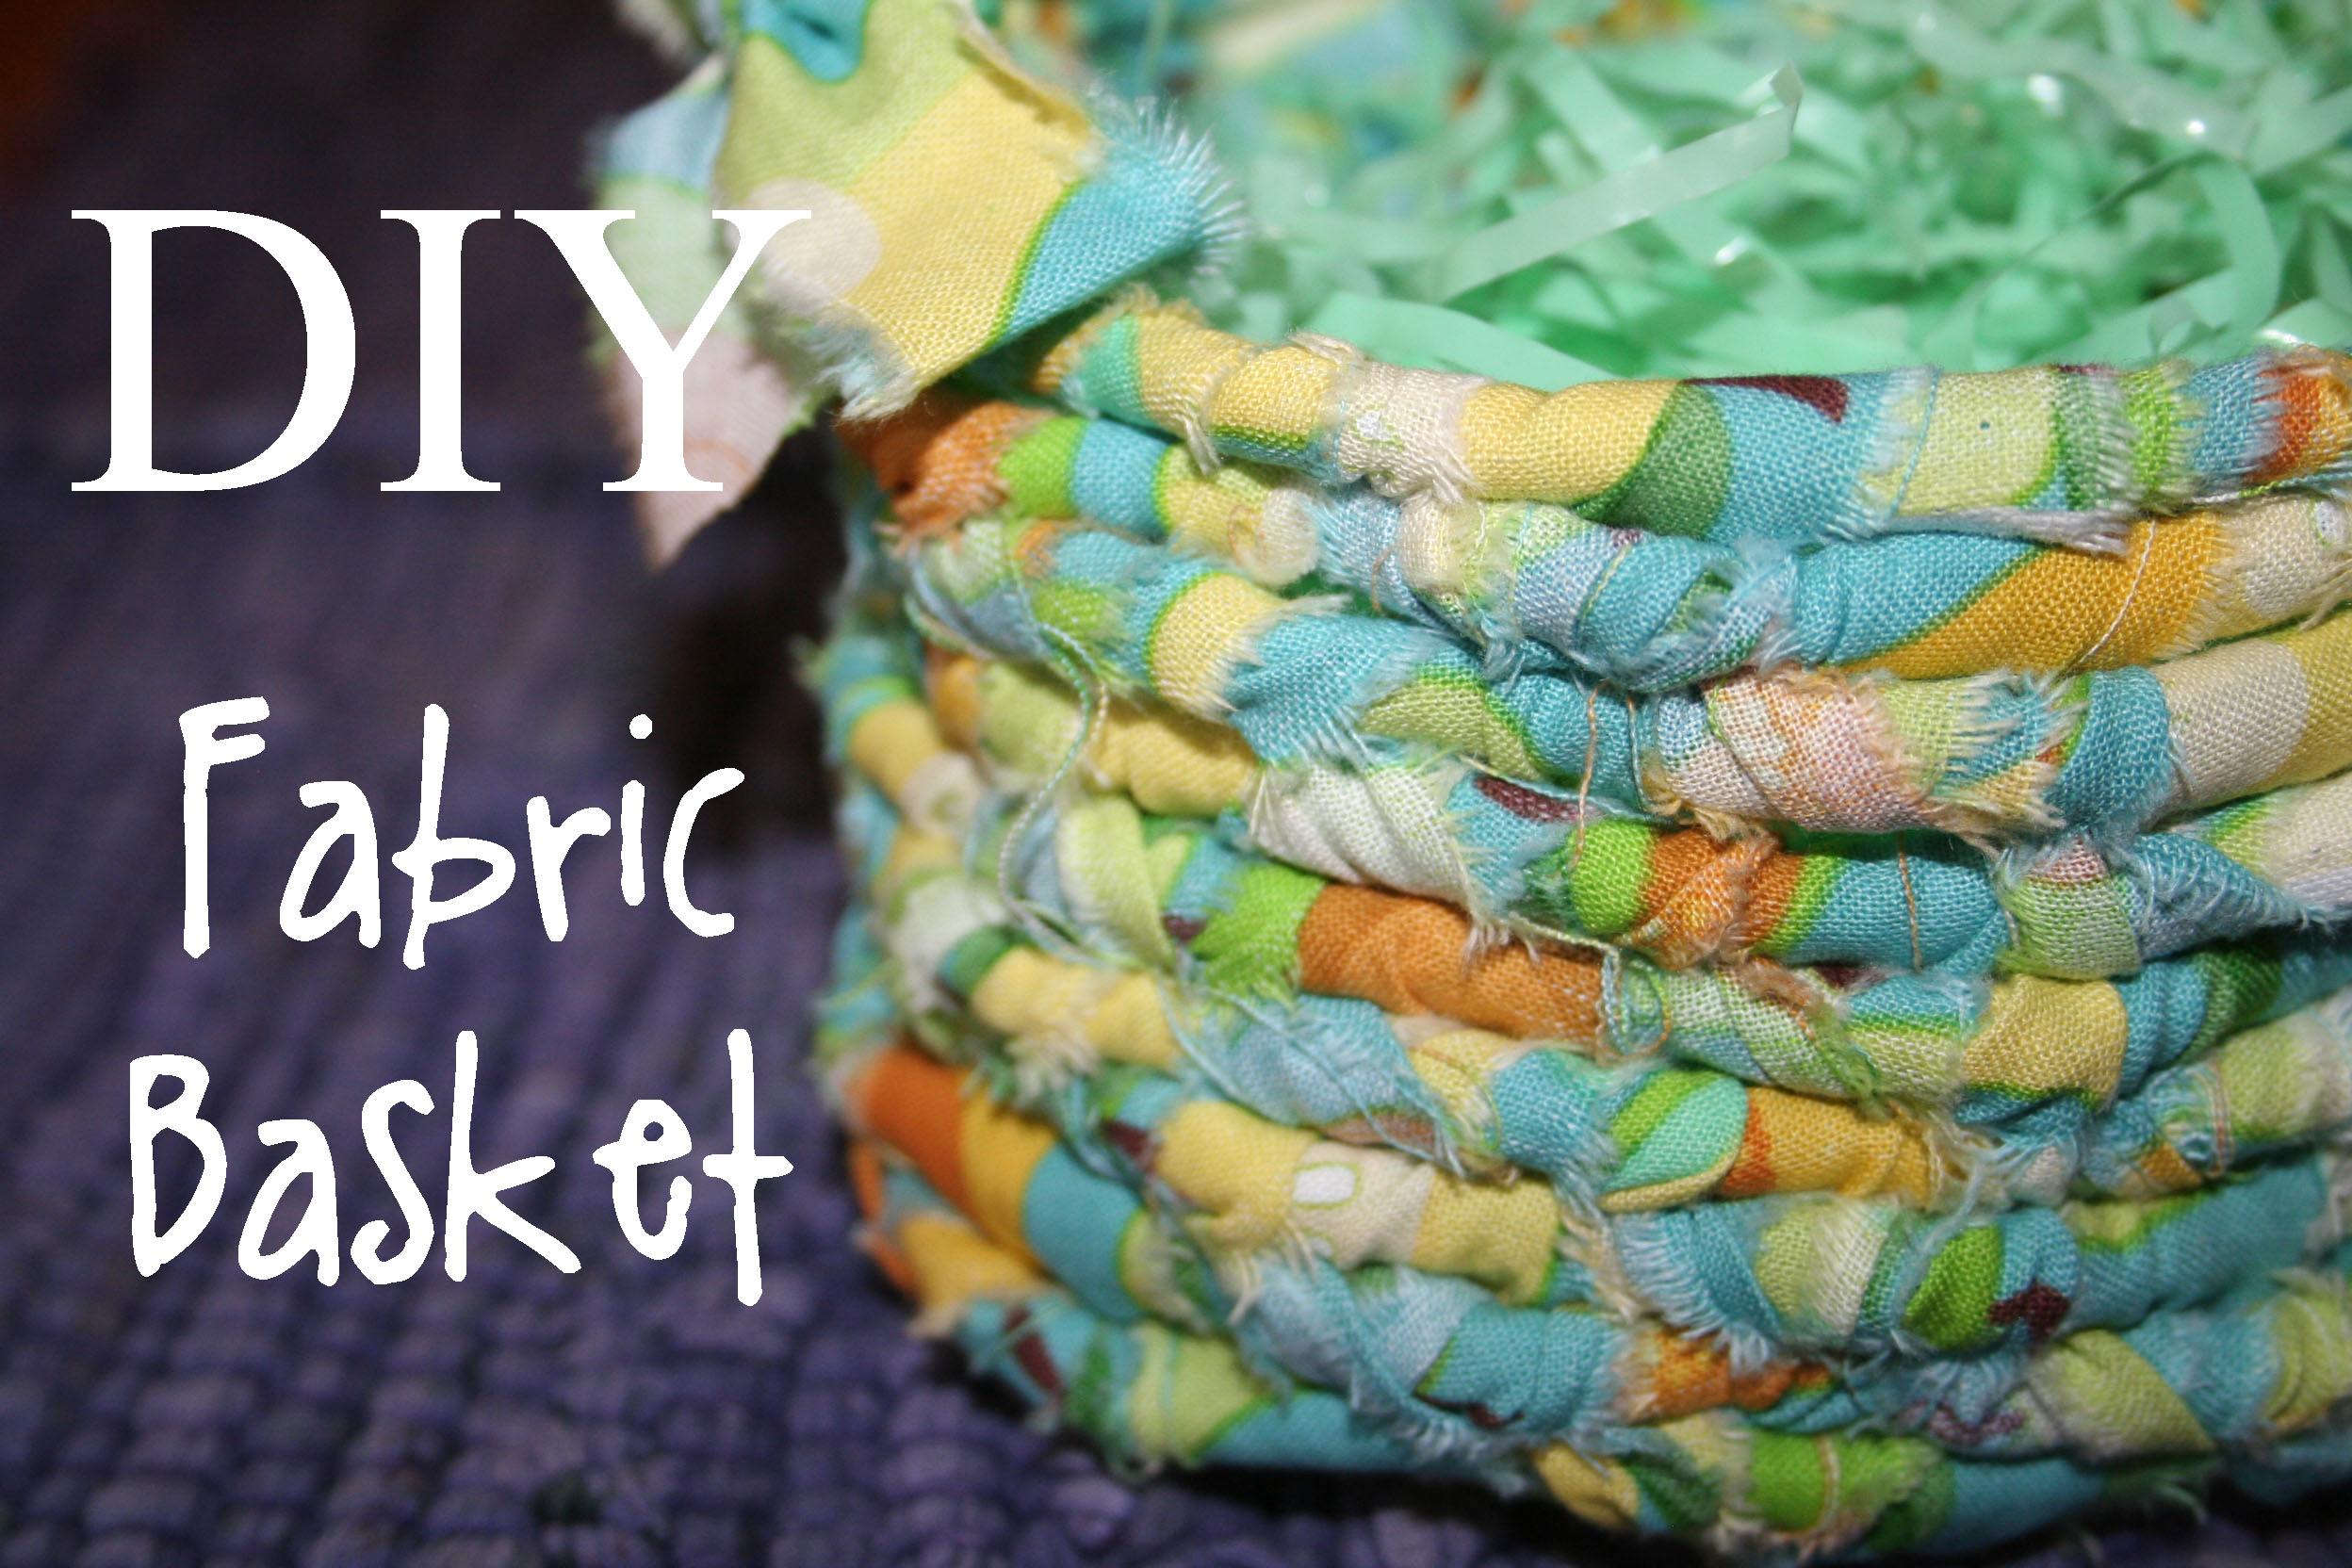 DIY Fabric Basket | The Renegade Seamstress